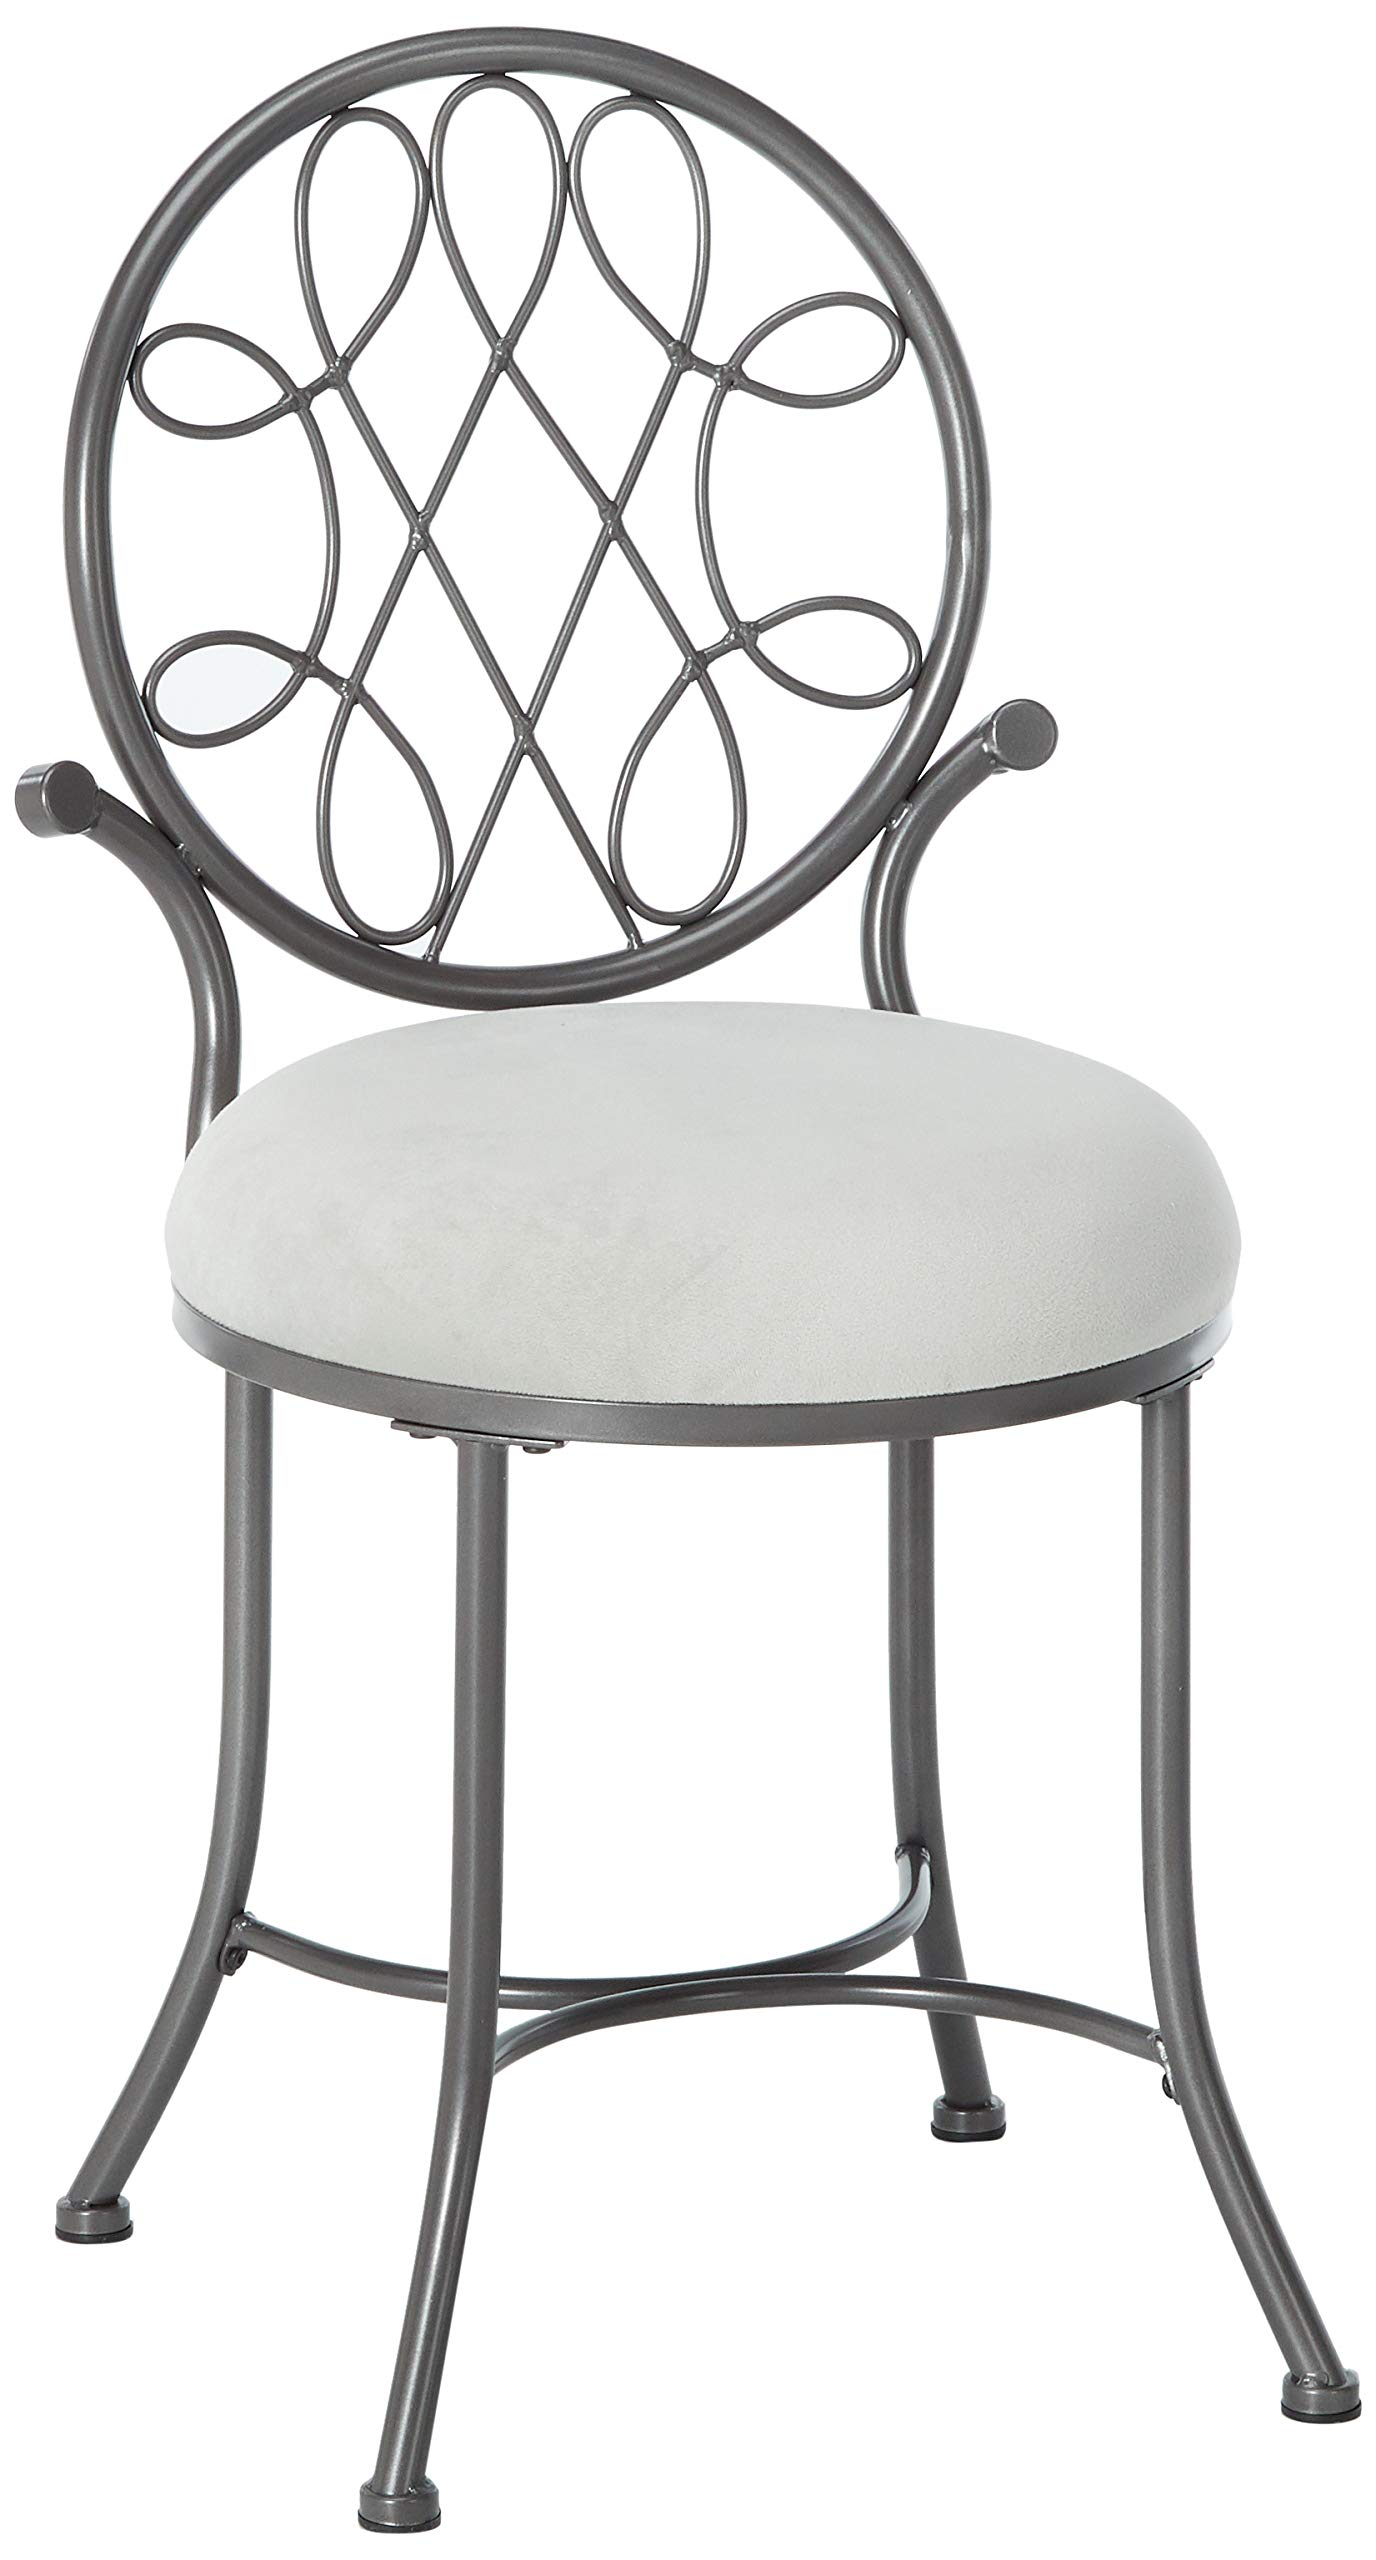 Hillsdale O'Malley Vanity Stool, Gray by Hillsdale Furniture